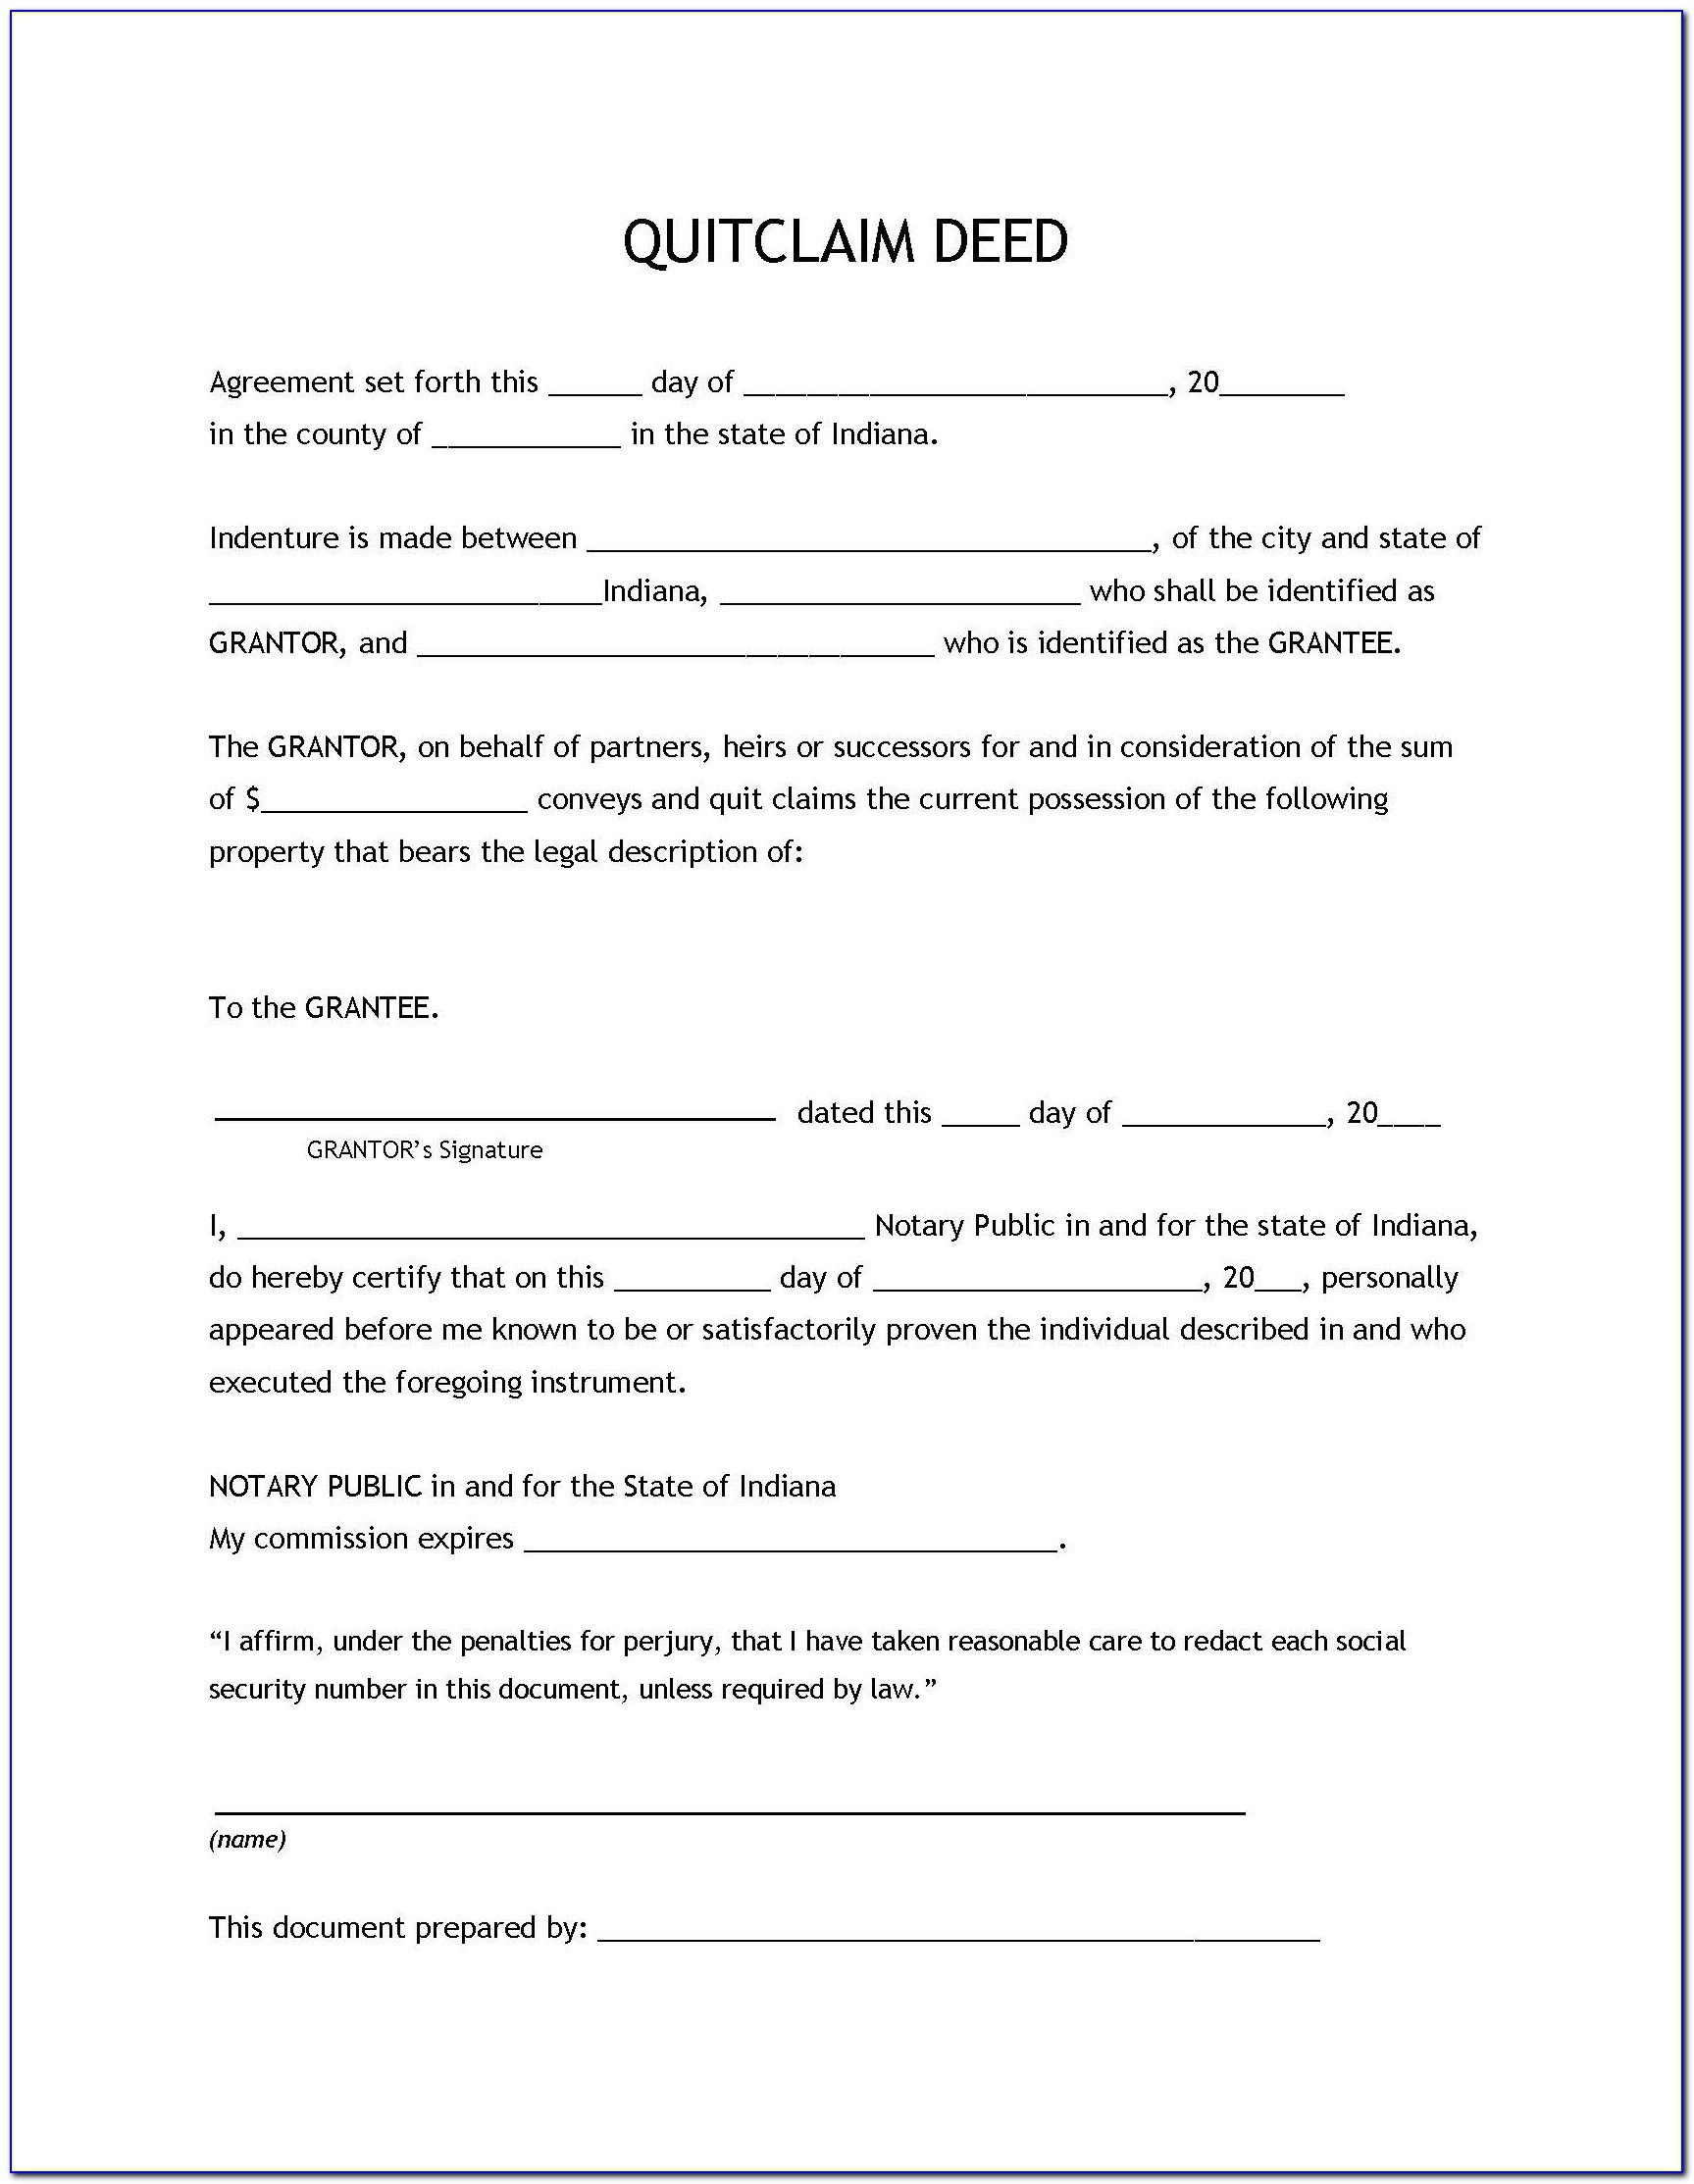 Indiana Deed Forms - Form : Resume Examples #8R2Nrln2A7 - Free Printable Quit Claim Deed Form Indiana